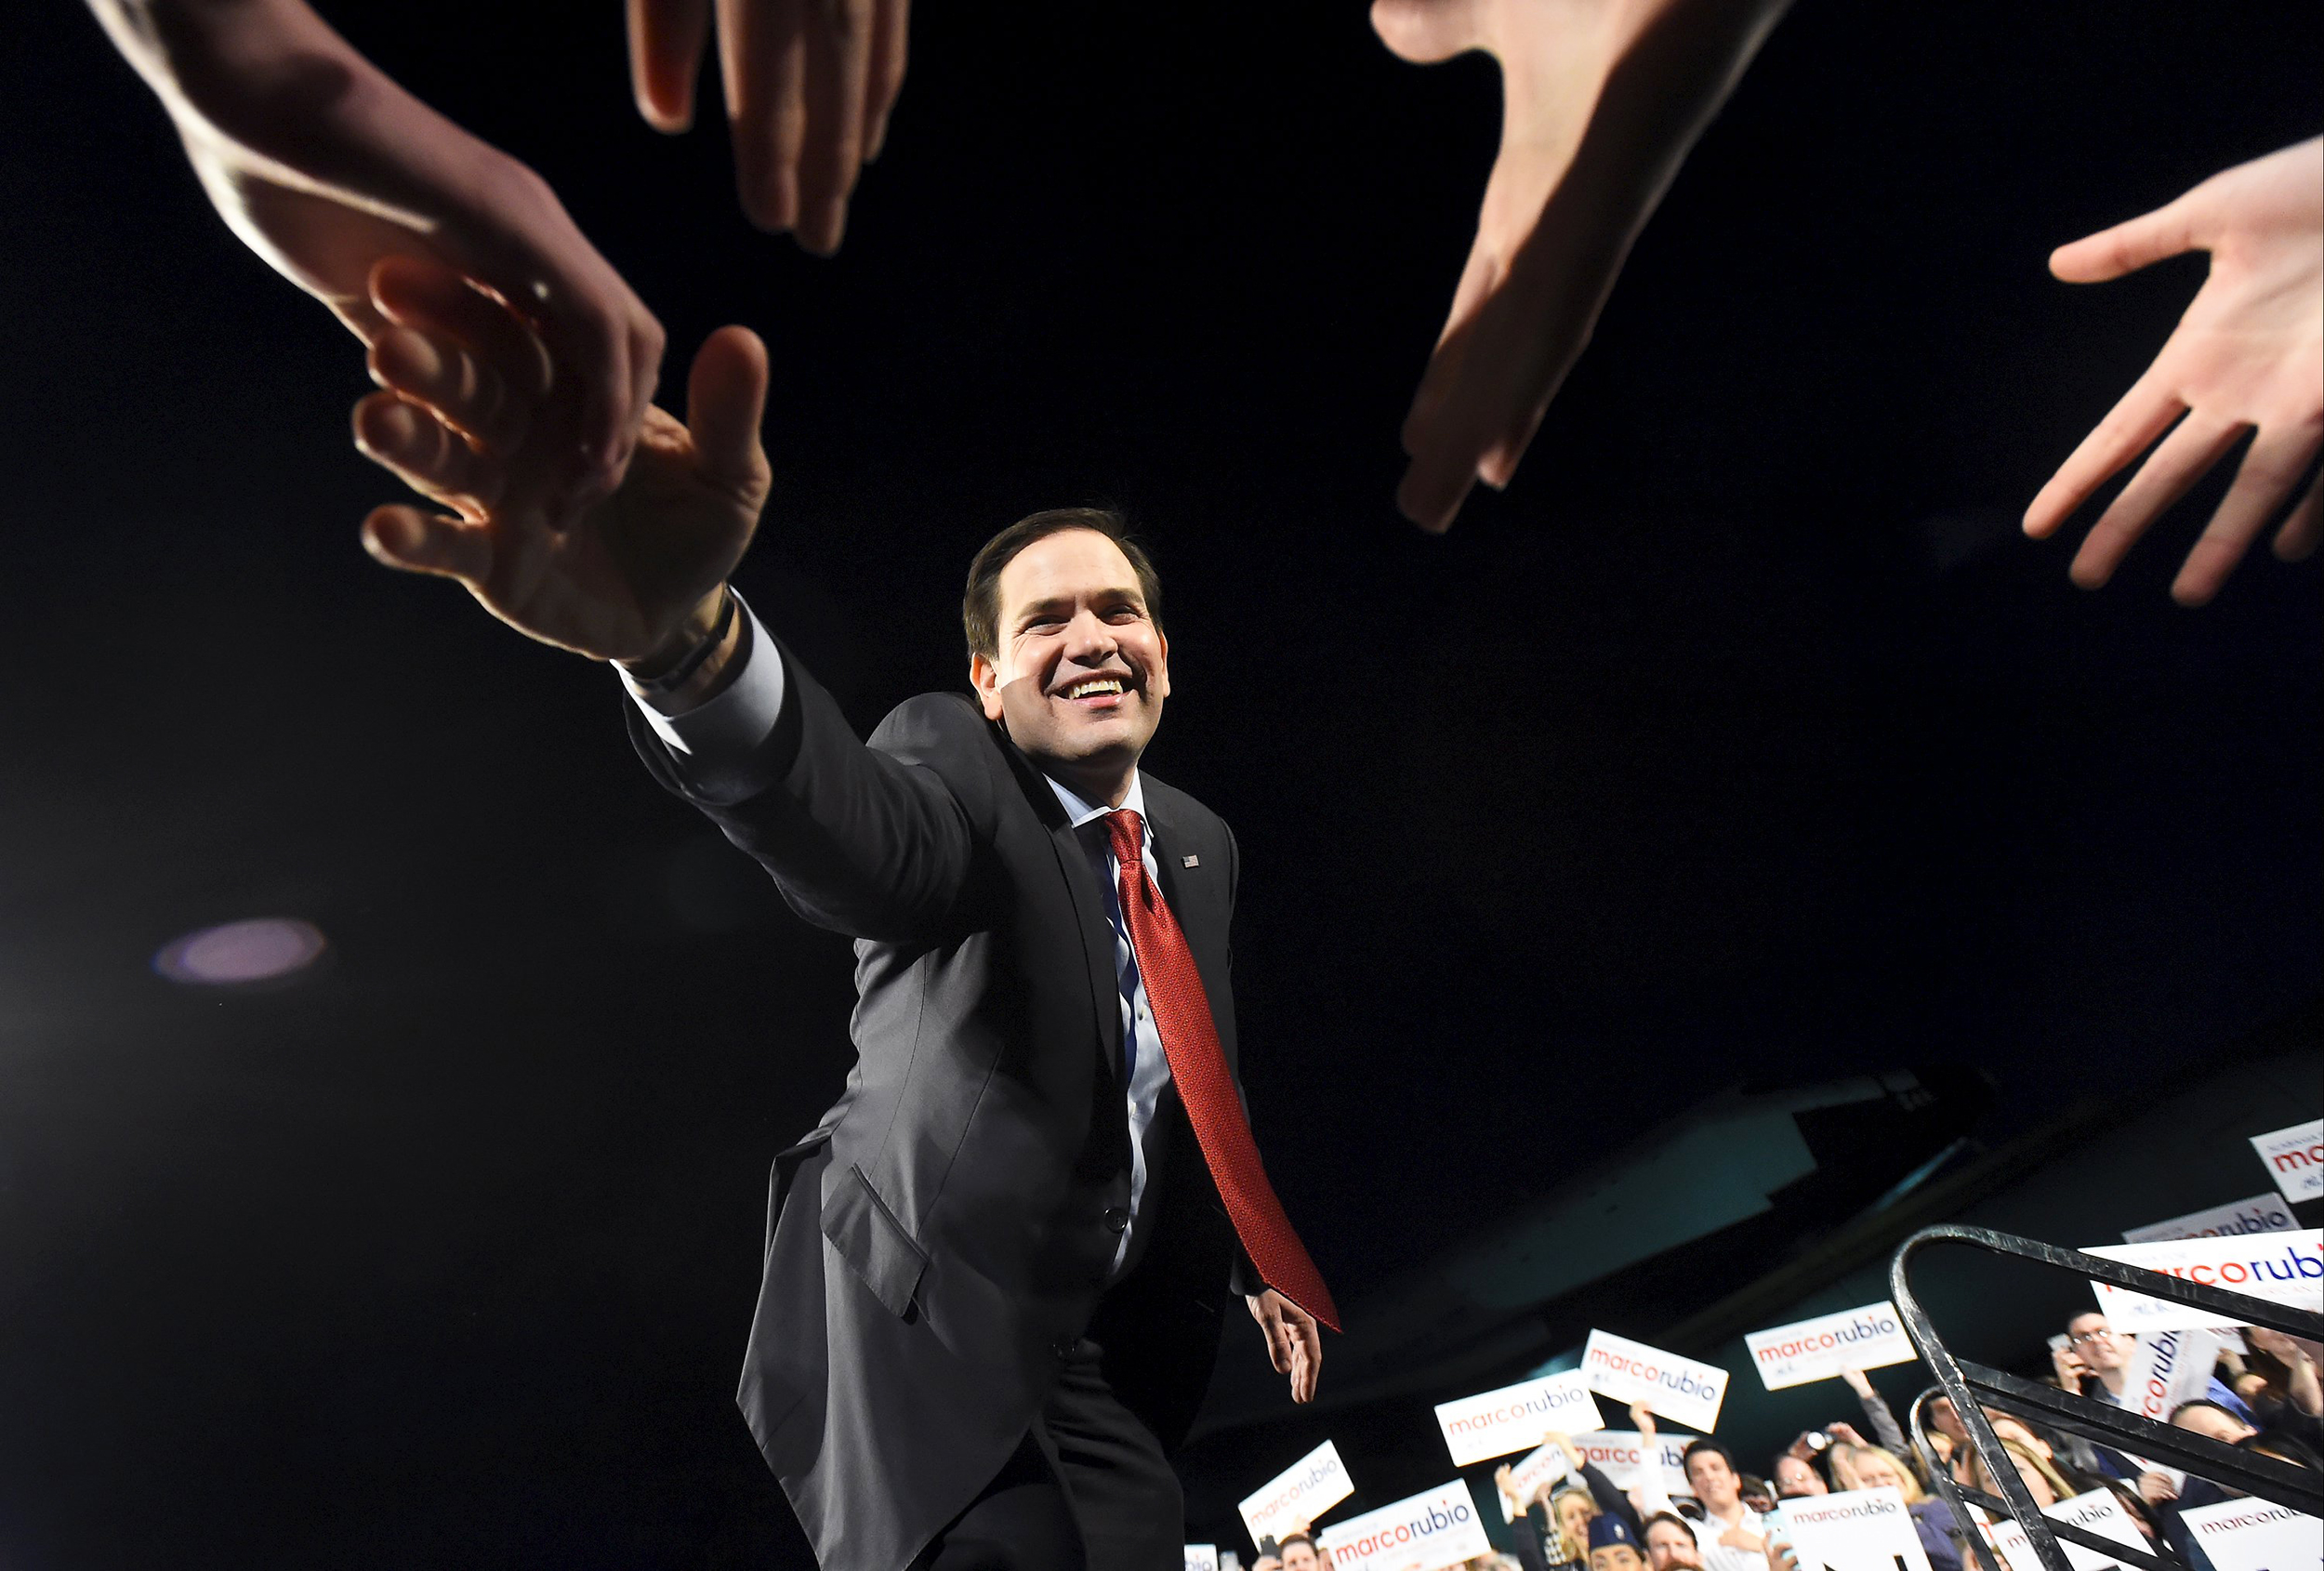 Marco Rubio greets supporters during a campaign stop at the U.S. Space and Rocket Center in Huntsville, Alabama on  Feb. 27, 2016.